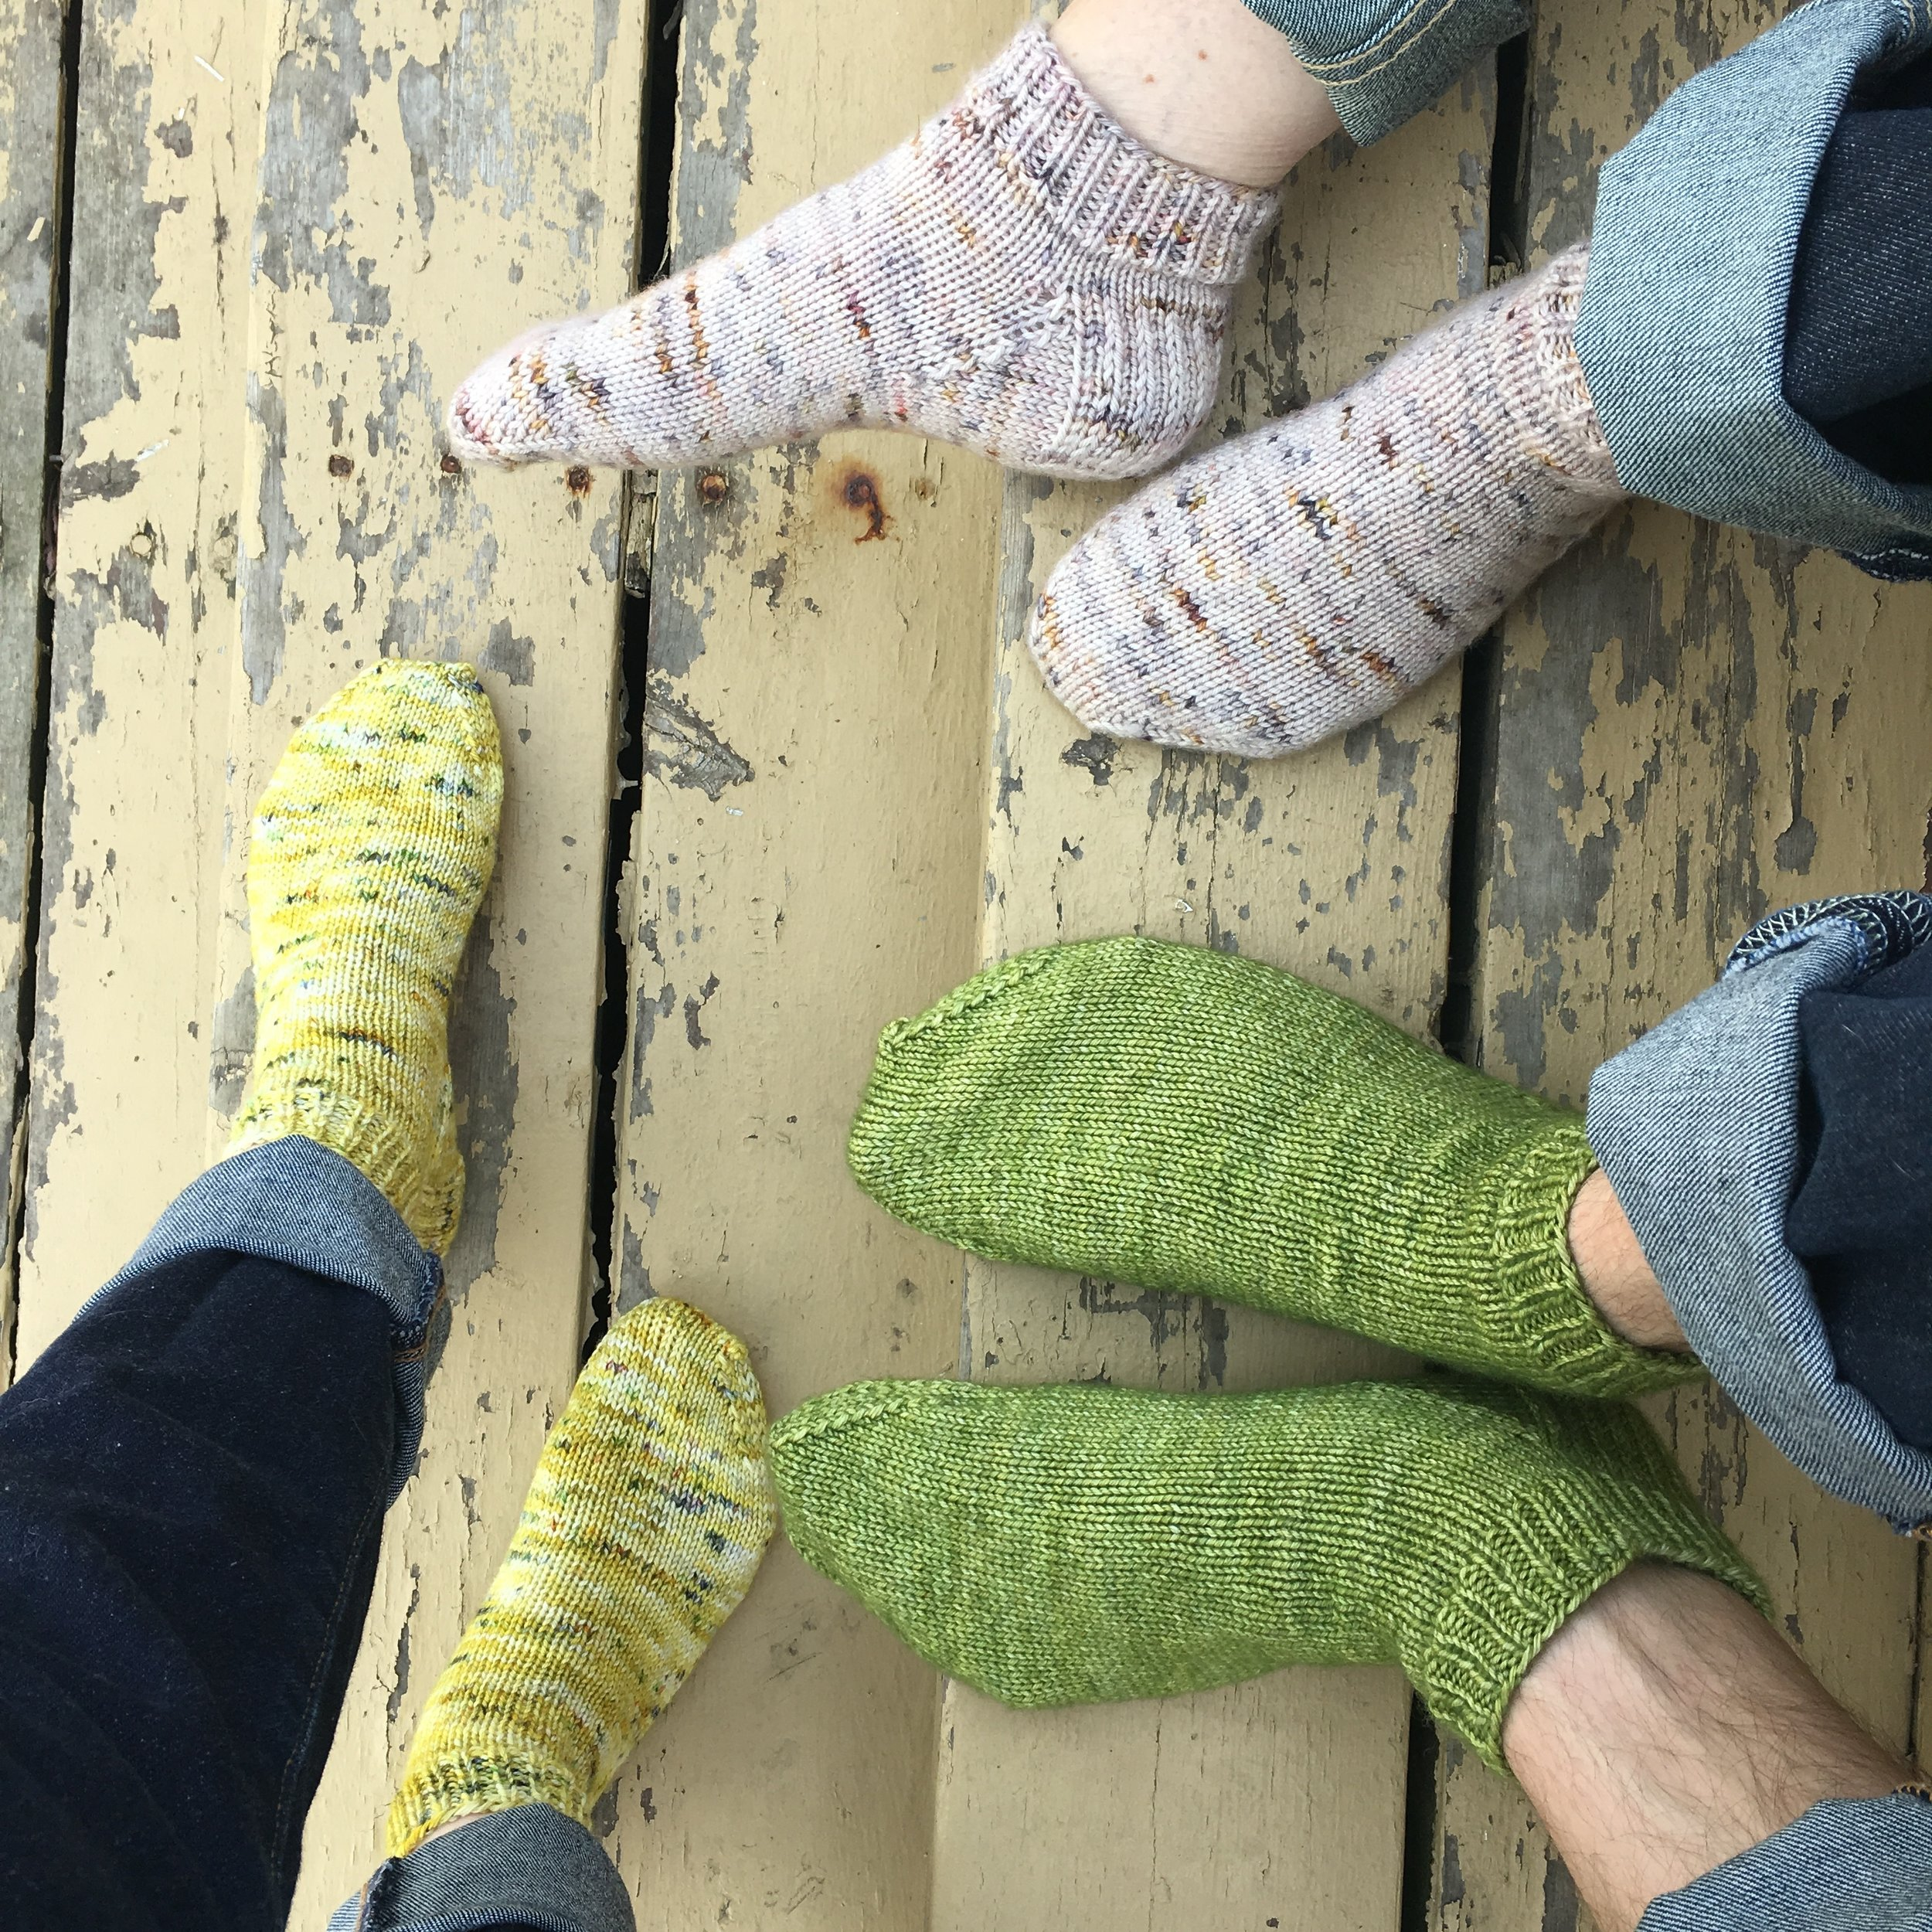 Community Socks - This sock pattern was written with the intention of giving back to the community and creating new ones. These socks are knit top-down using the magic loop method, with a traditional heel flap and kitchener stitch to close the toe. Knit a pair for yourself, for a friend, or for someone who could use a pair of hand knit socks. Share with your local knitting circle and social media knitting circles. Community Socks are a quick knit for new and seasoned sock knitters.